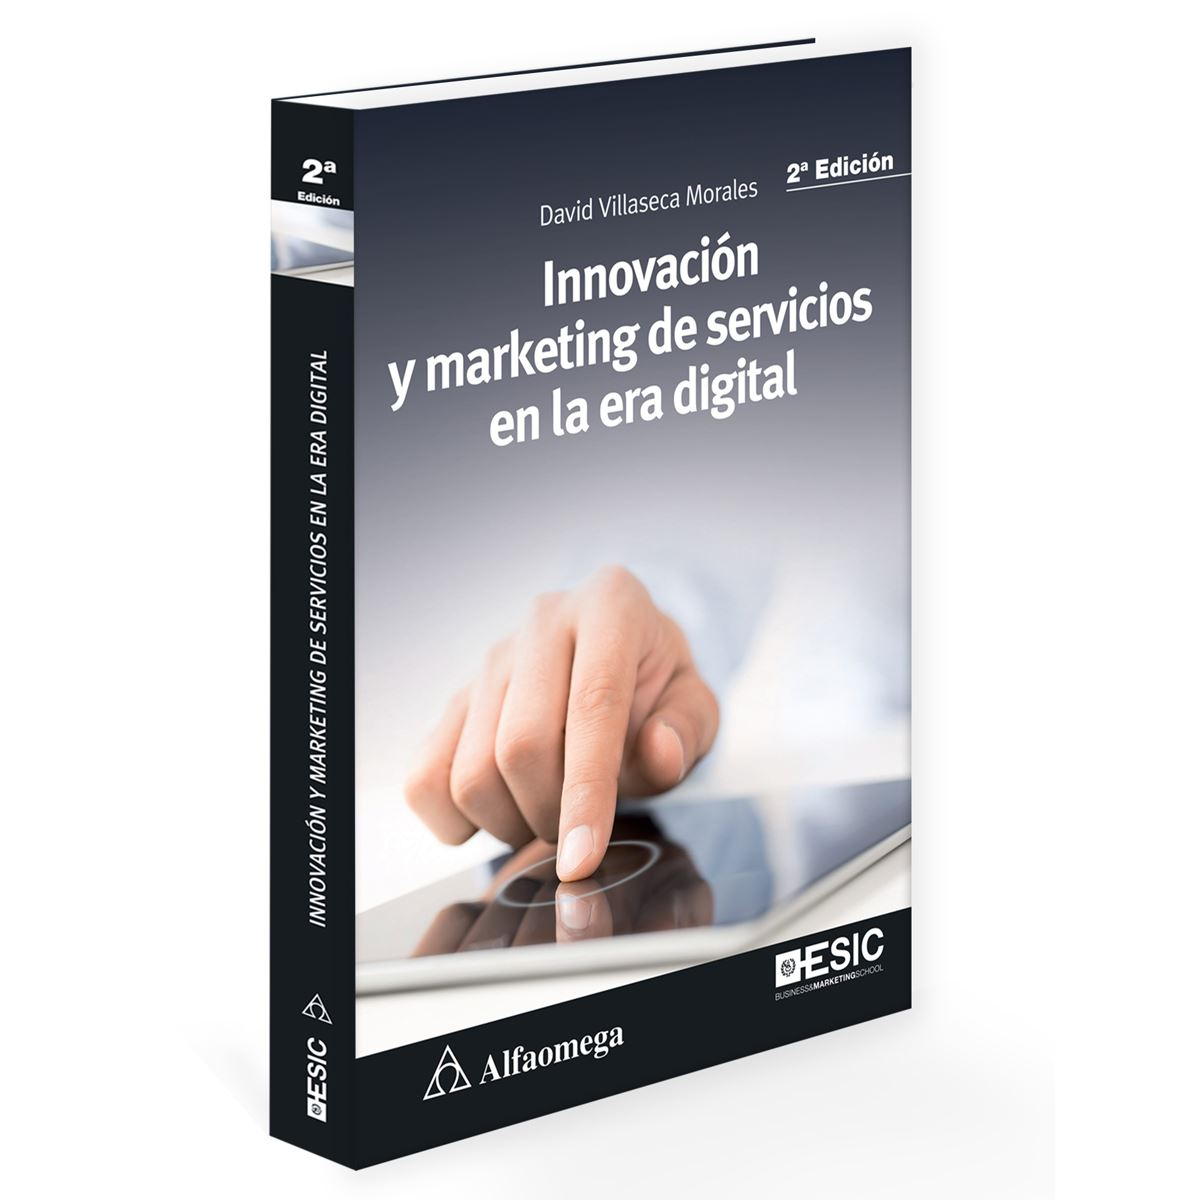 Innovación y marketing de servicios en la era digital